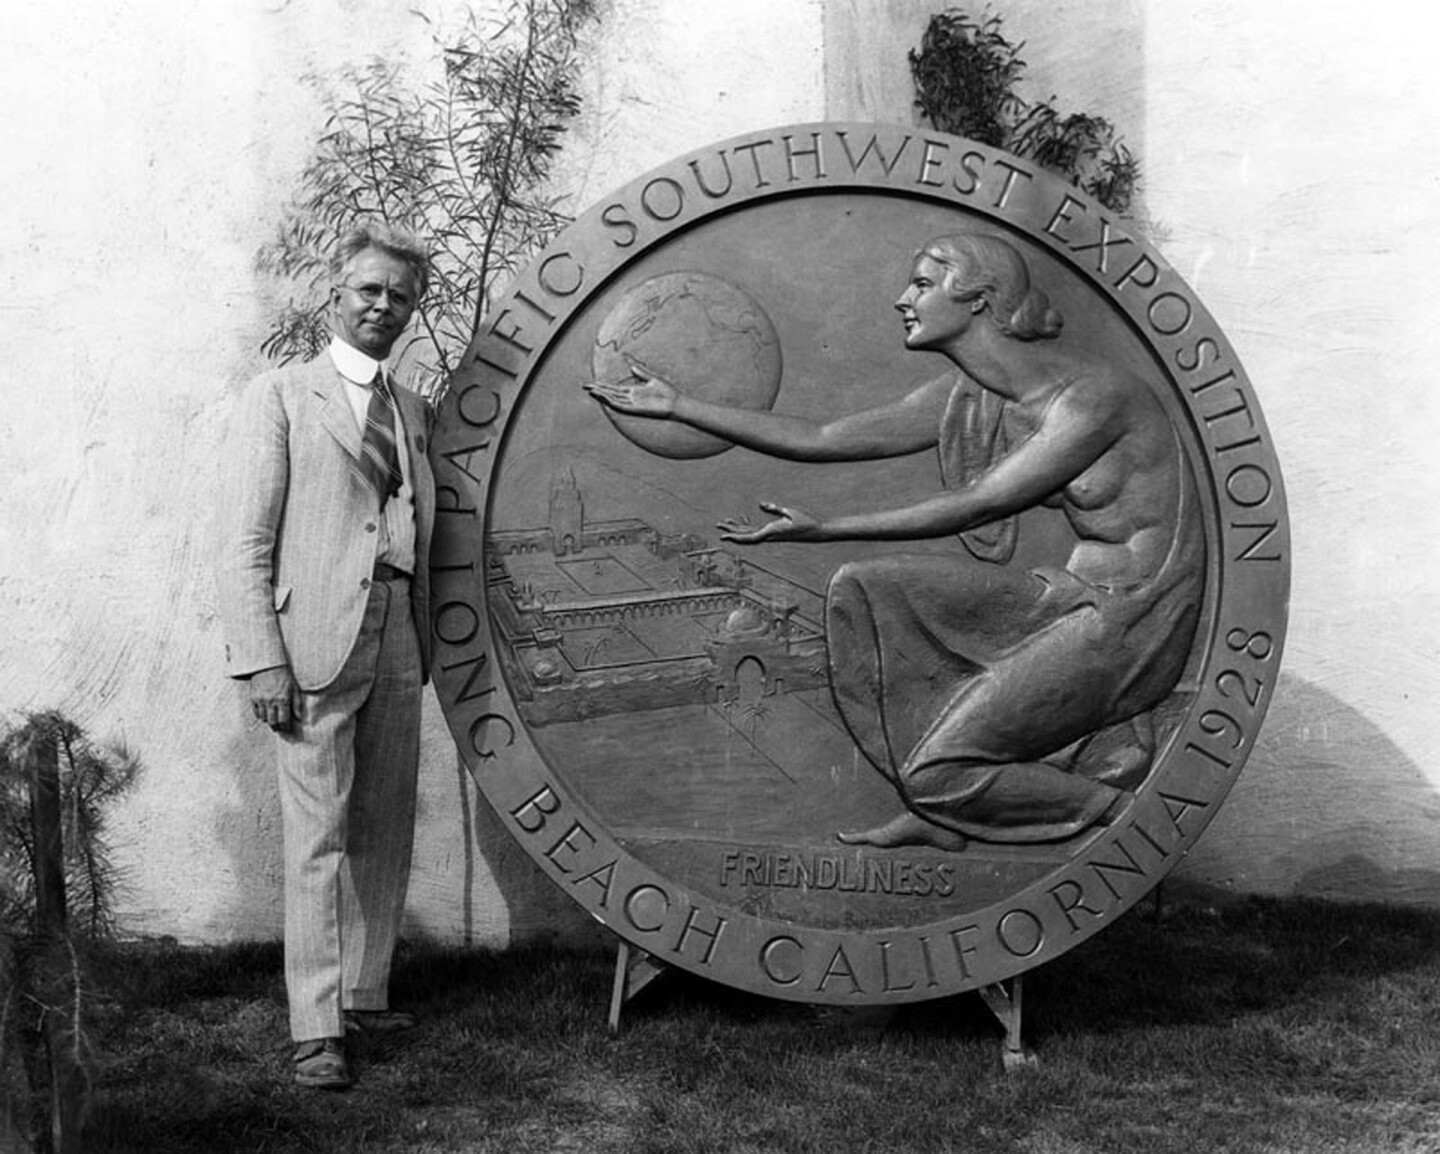 """Friendliness. The fair's medallion, designed by Roger Noble Burnham, proclaimed """"friendliness"""" as the fair's motto. Photograph courtesy of Security Pacific National Bank Collection, Los Angeles Public Library"""